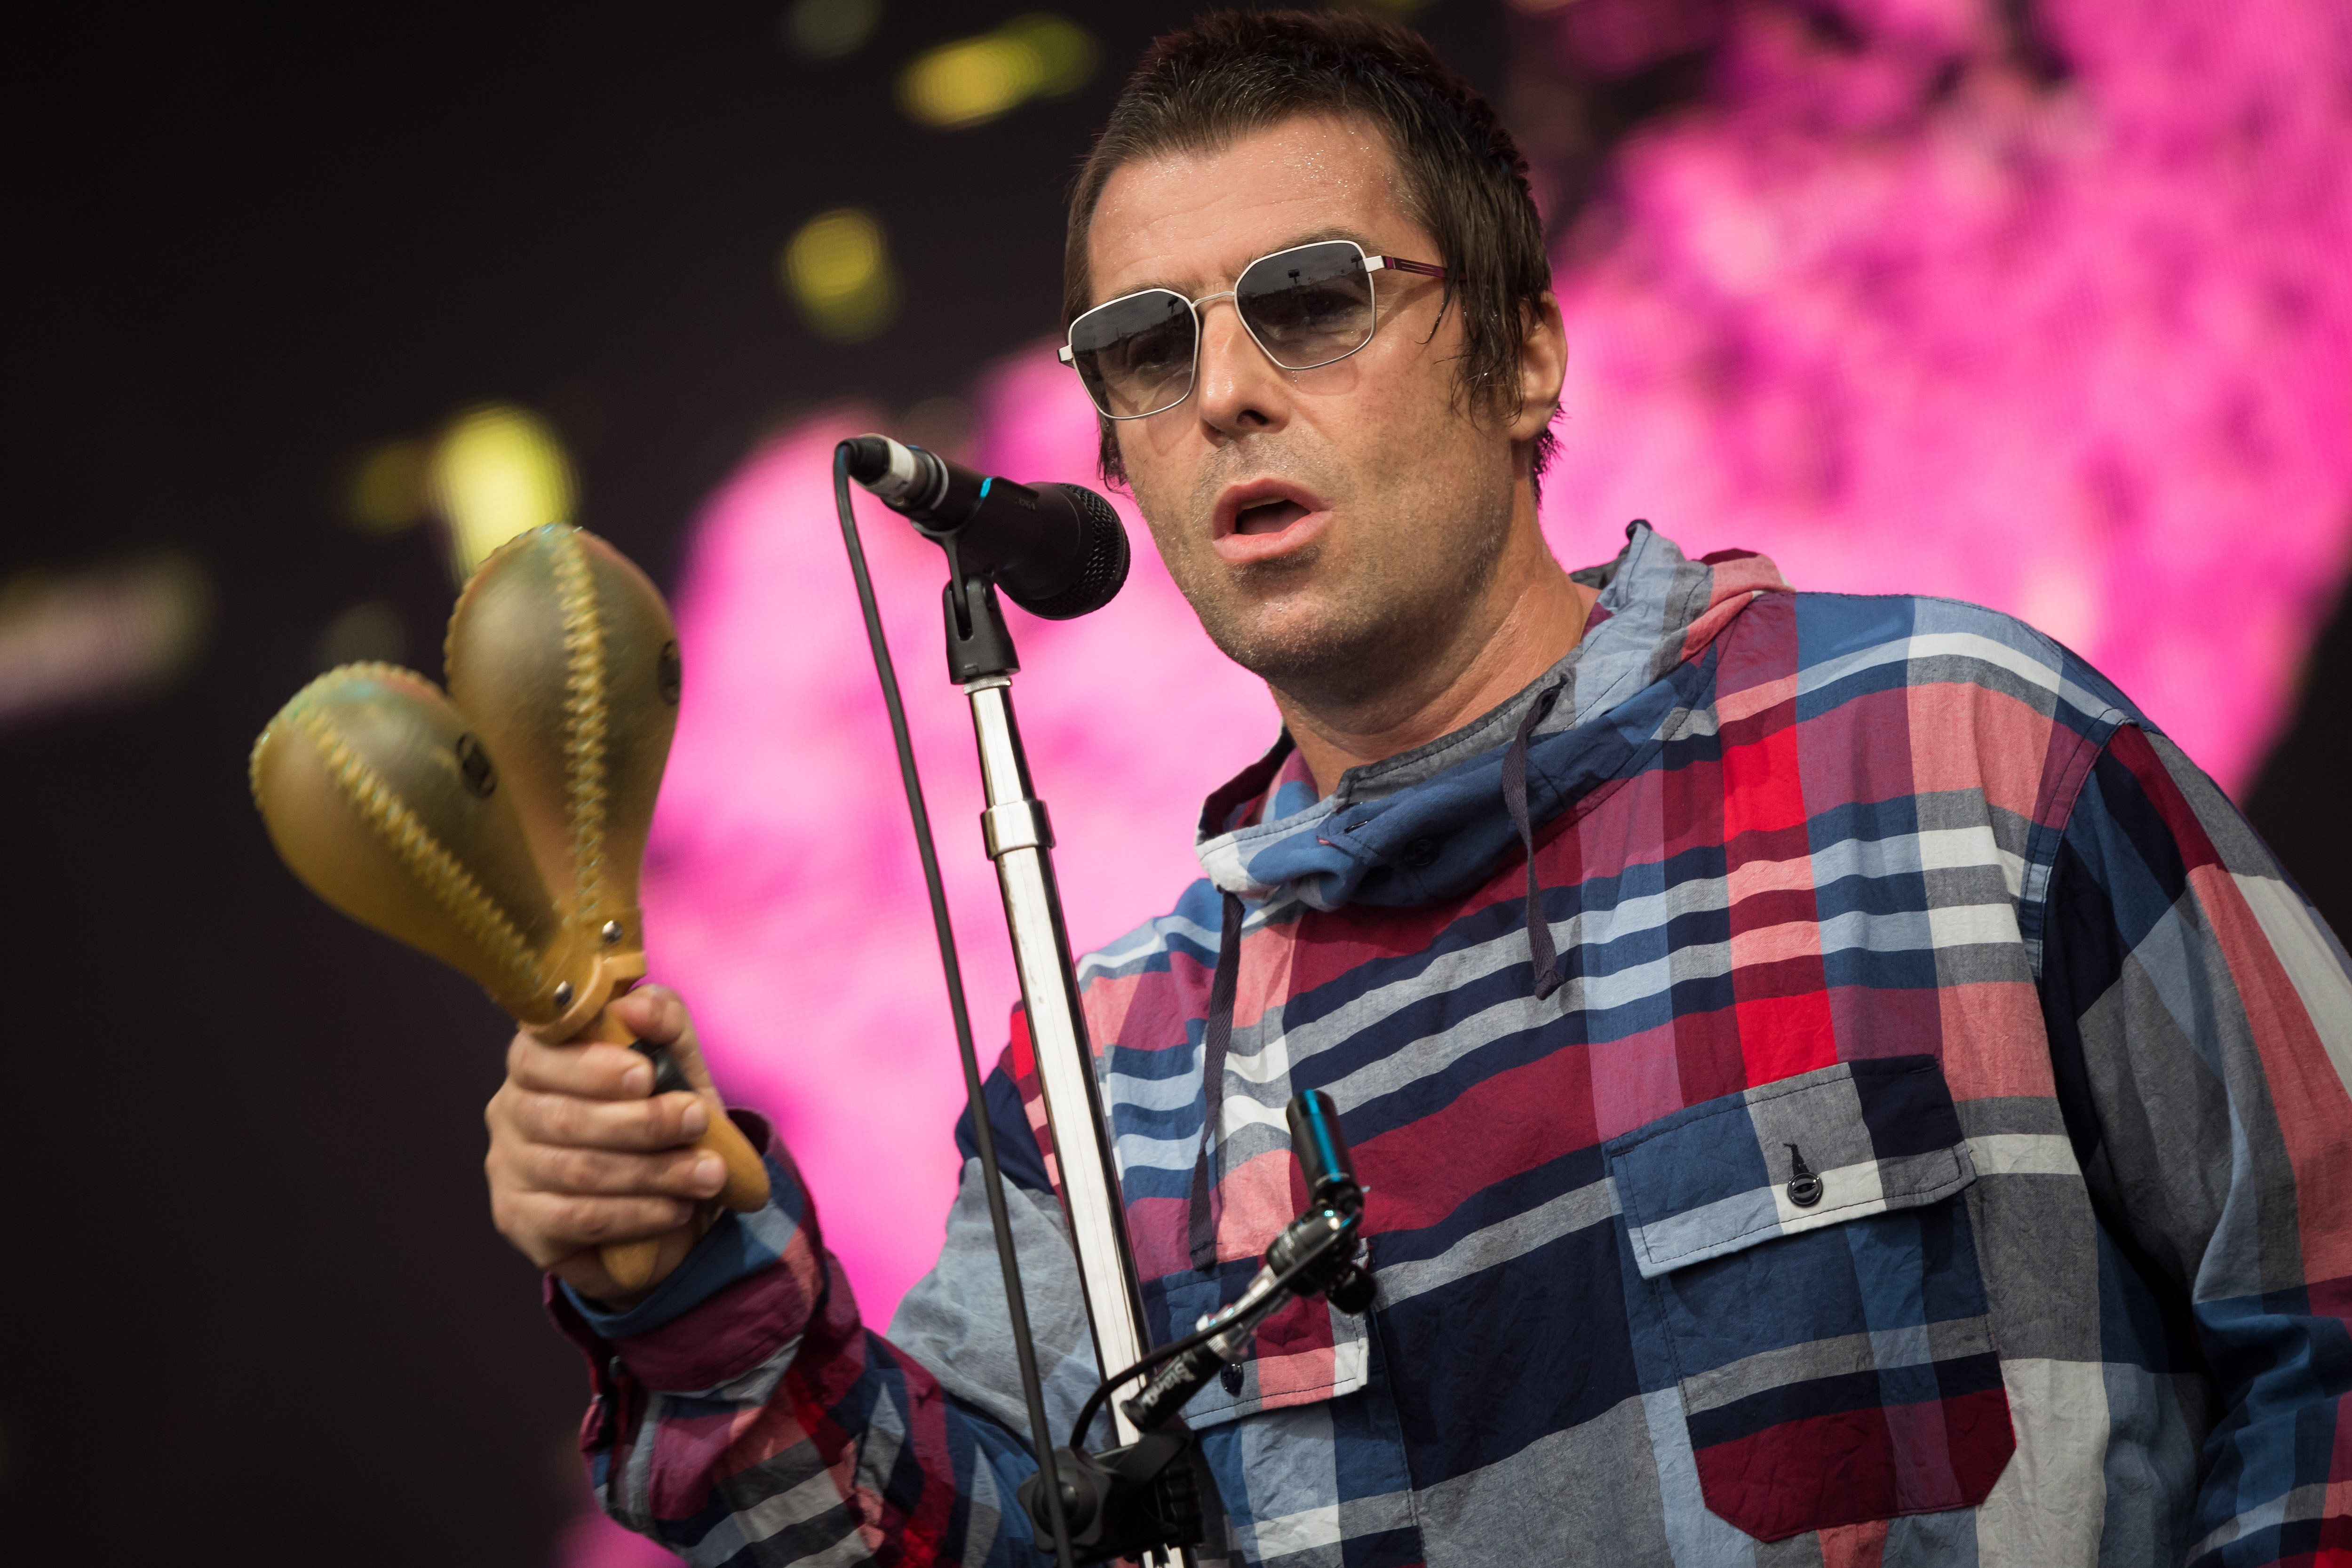 Liam Gallagher Announces 'MTV Unplugged' Show | SPIN